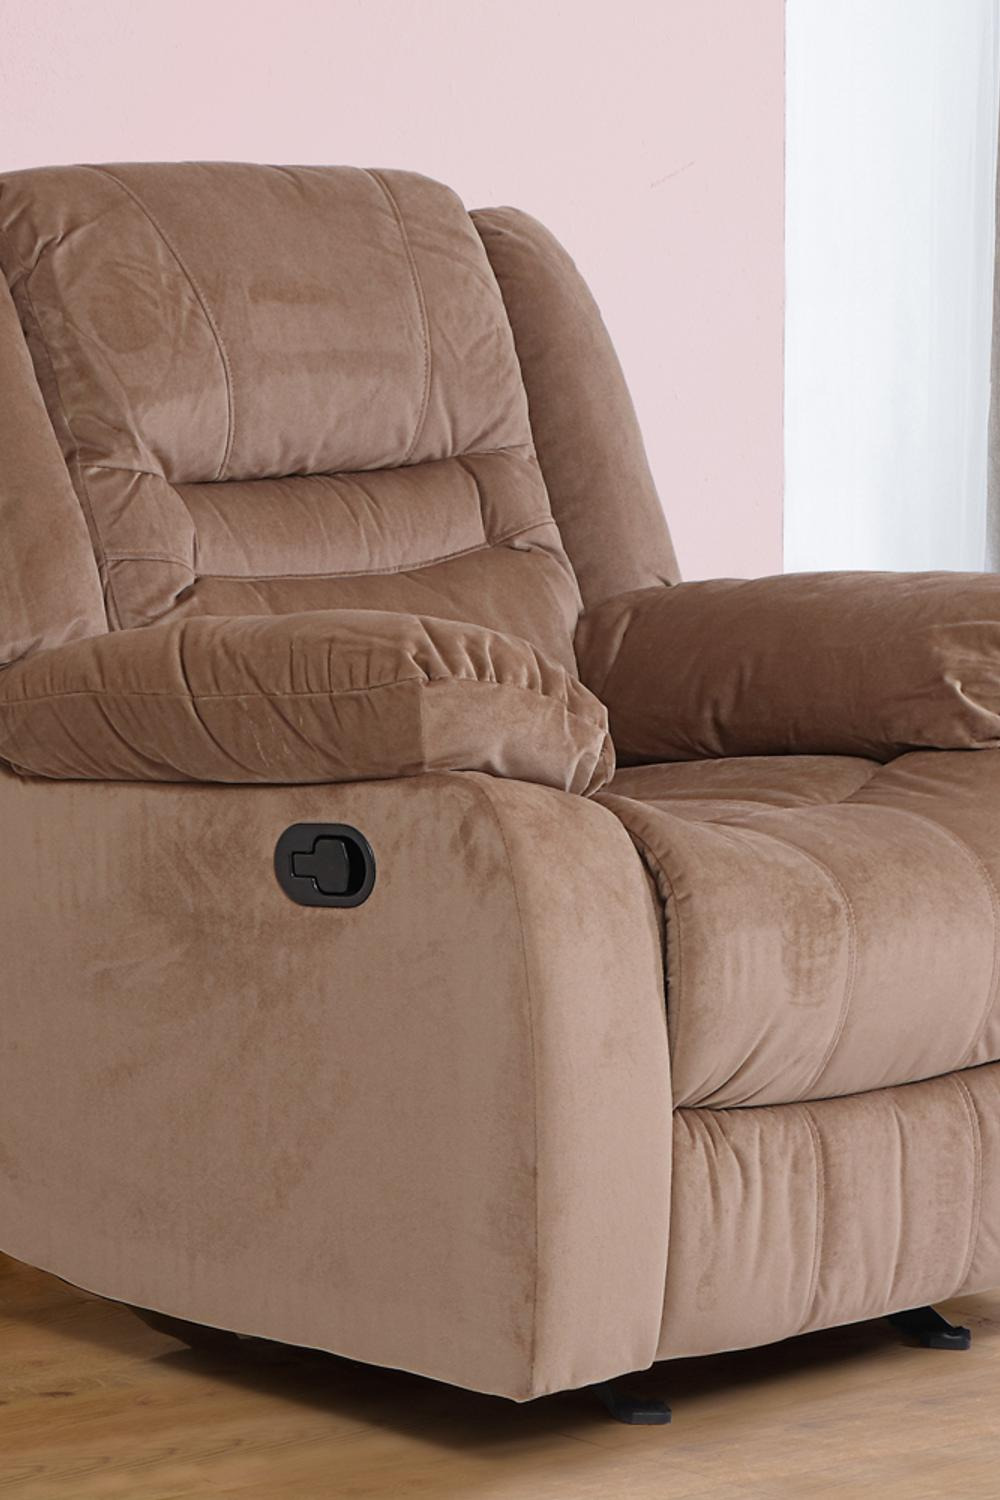 Houston Fabric Recliner Sofa 1 Seater-Light Brown